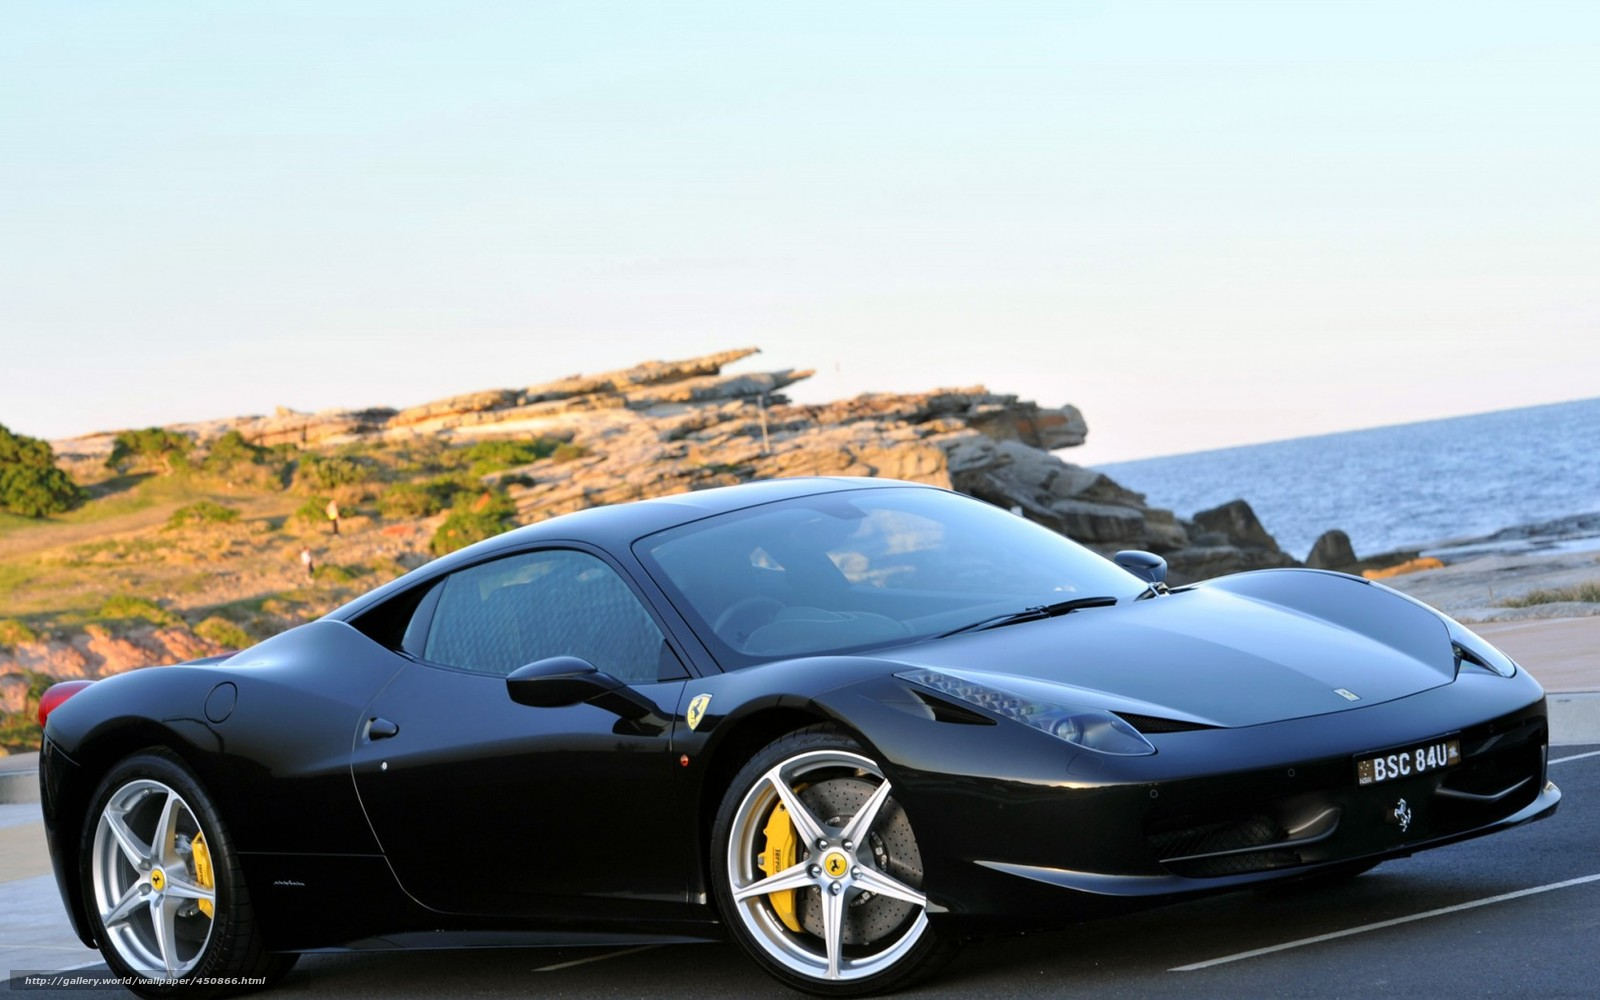 Download Wallpaper Ferrari Black Sea Ferrari Free